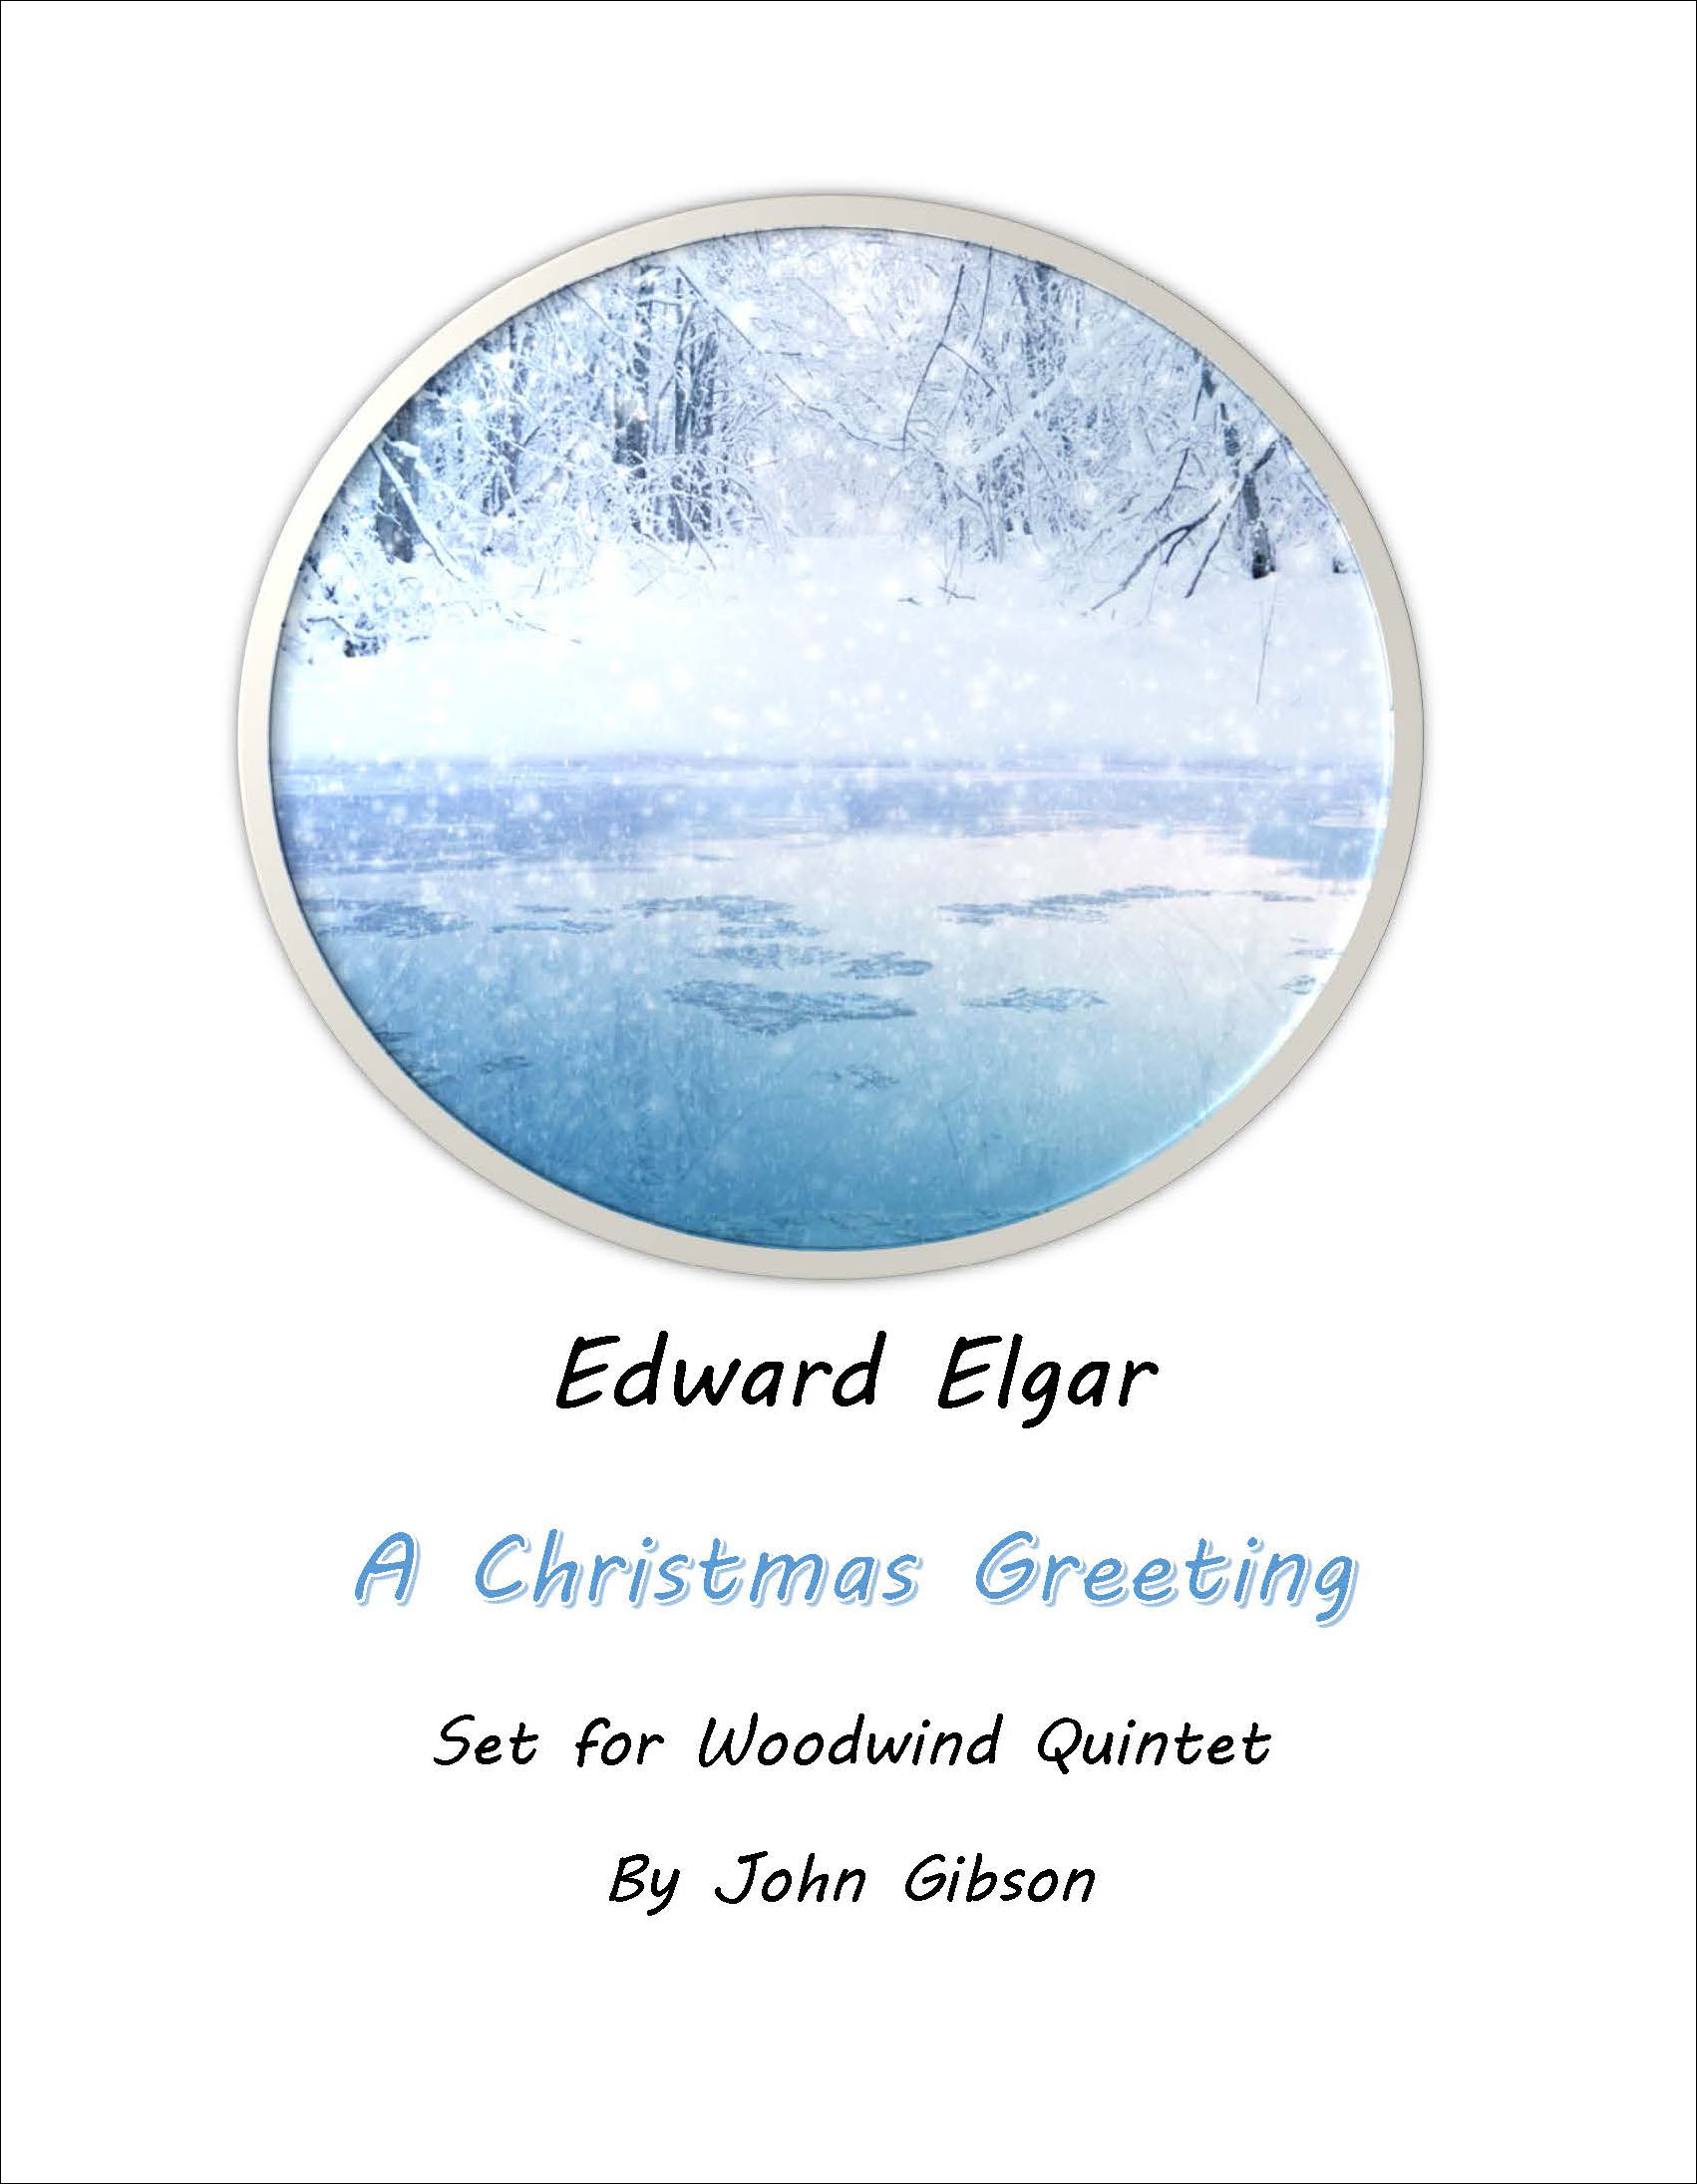 A Christmas Greeting set for Woodwind Quintet